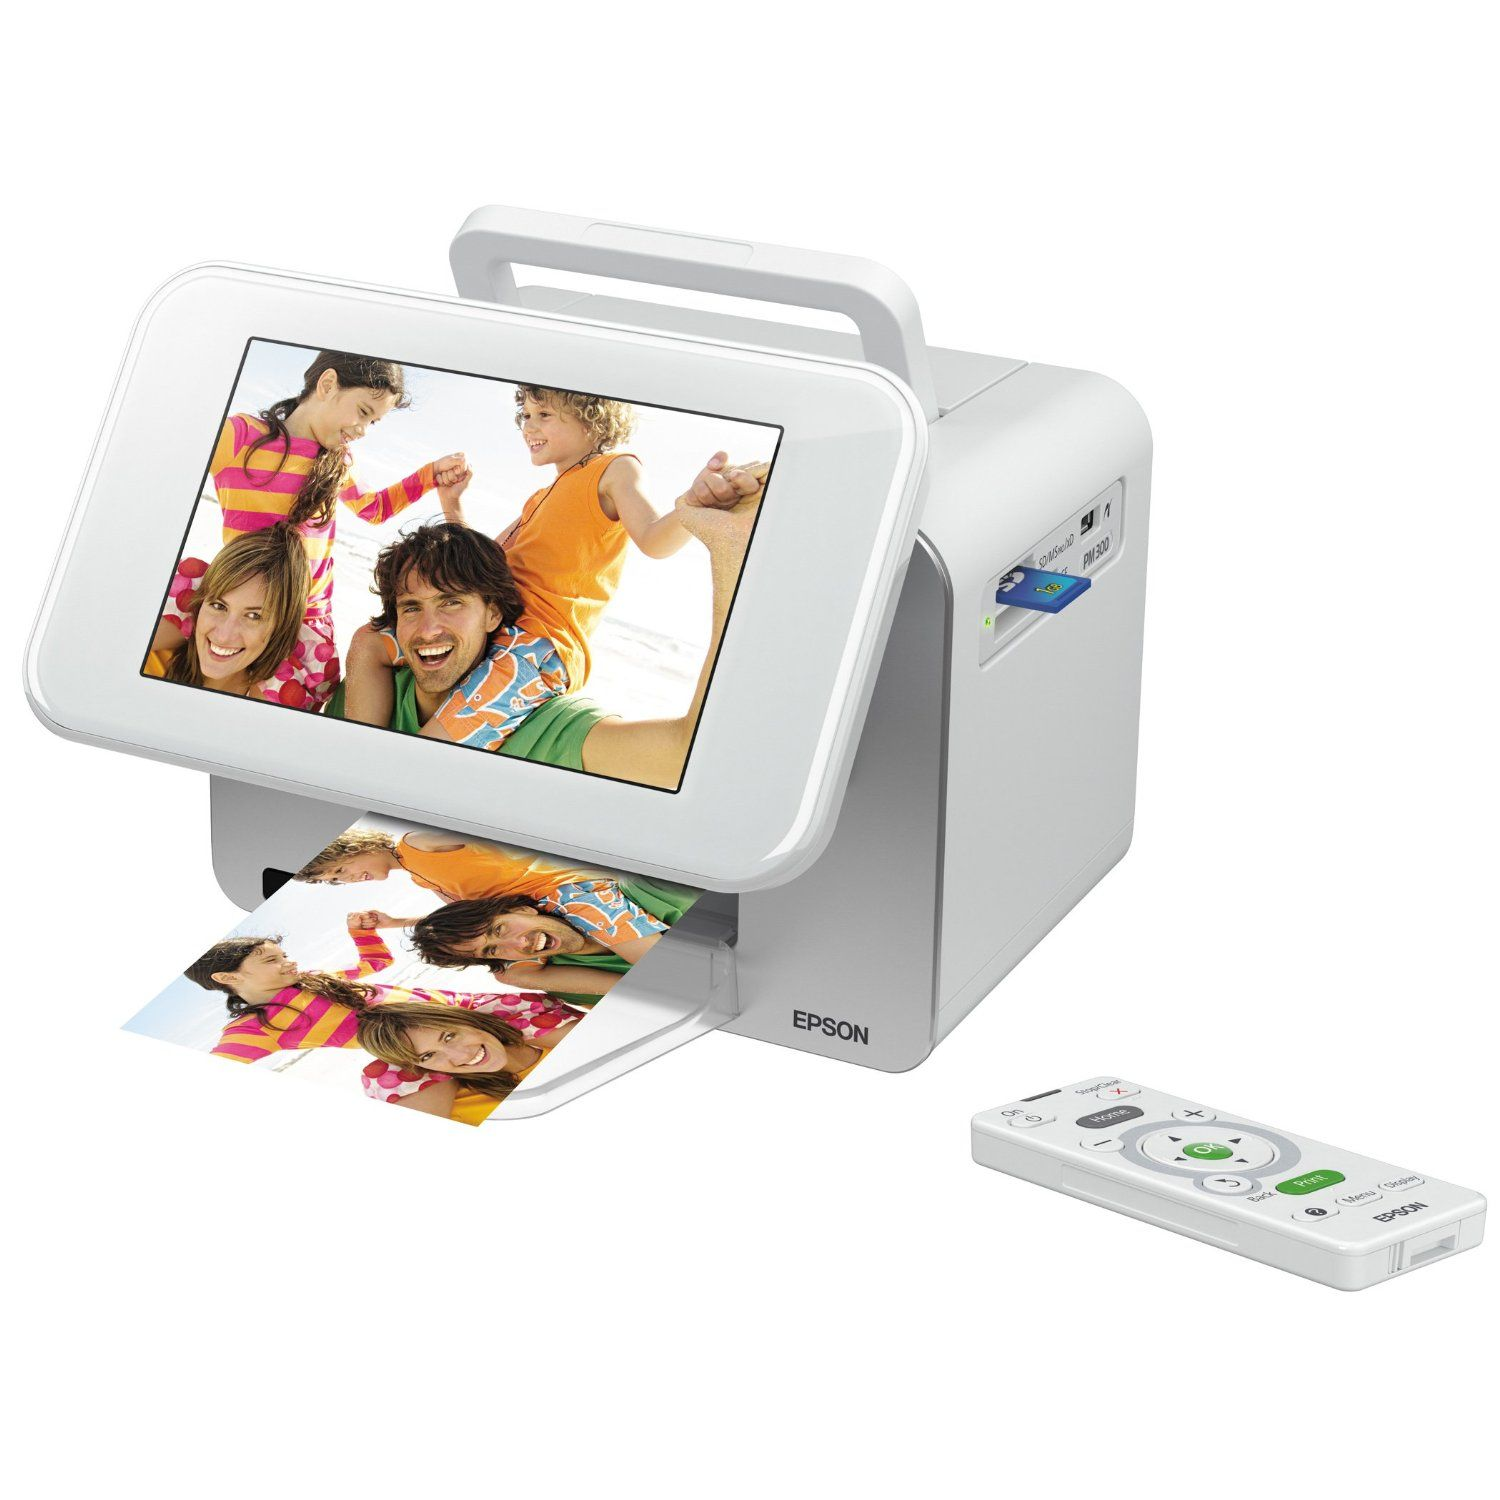 Amazon.com: Epson PictureMate Show Photo Printer and Digital Photo Frame (C11CA54203): Electronics